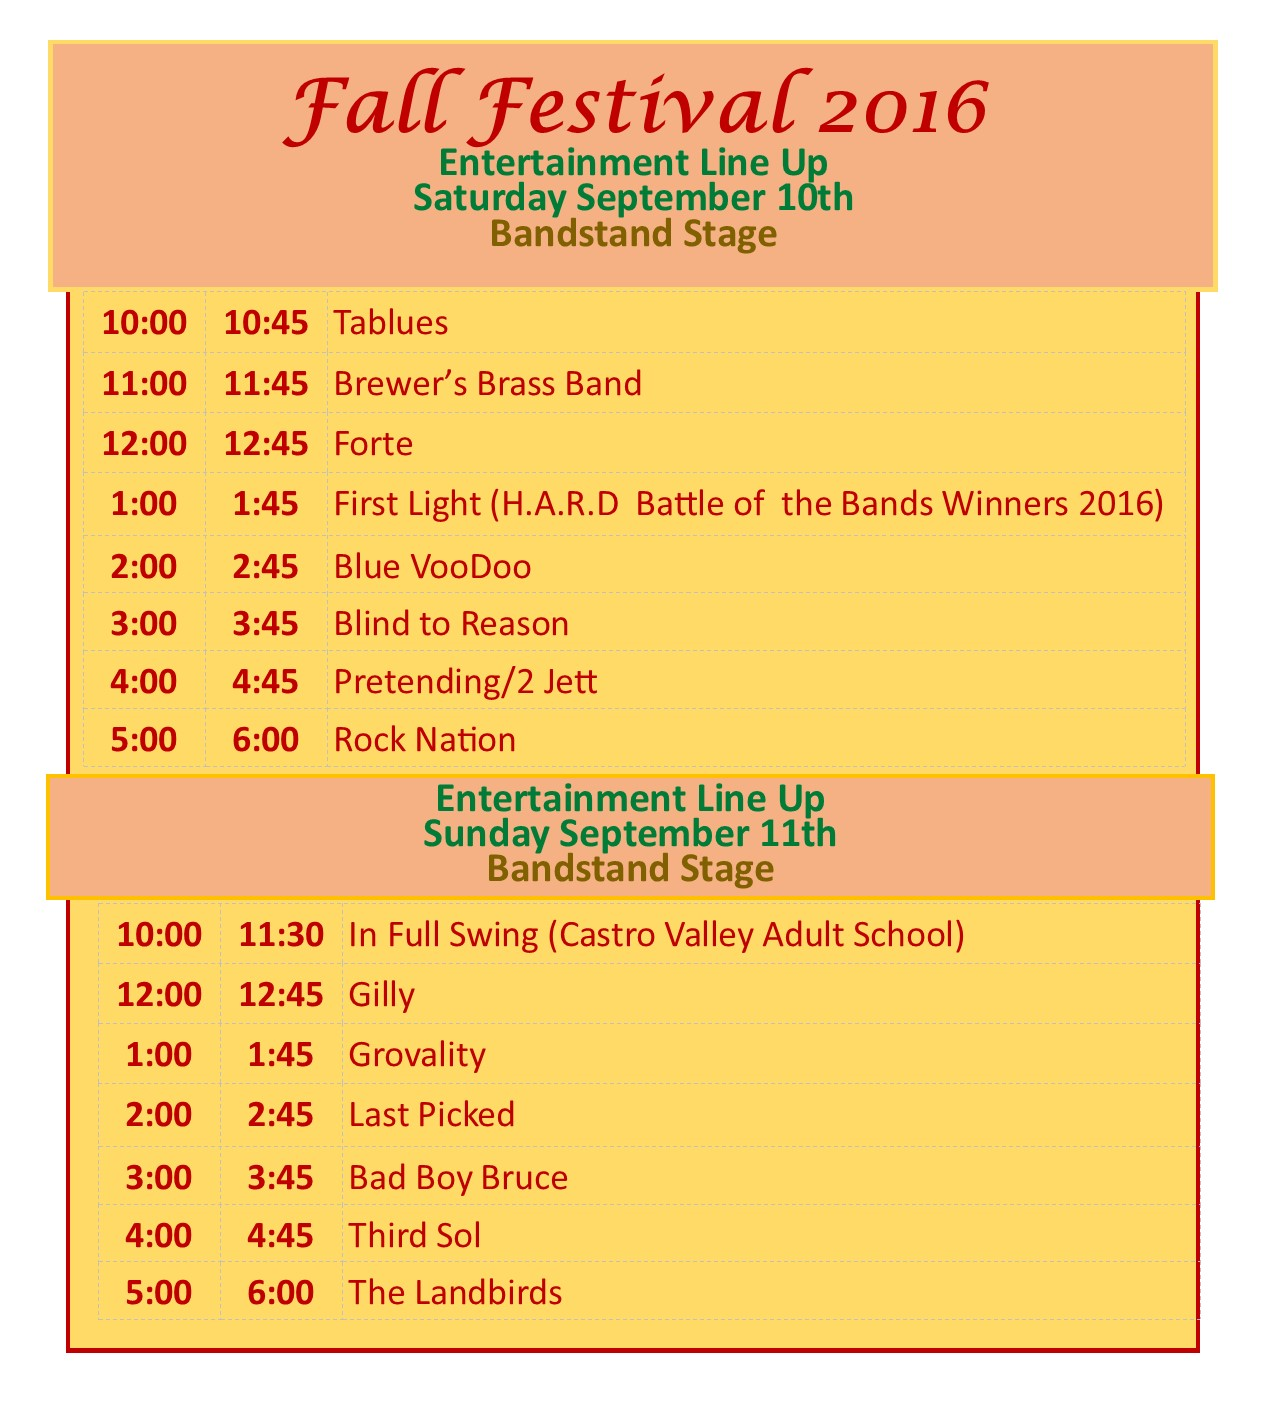 FF-Entertainment-Schedule-2016-BandStand-Stage.jpg